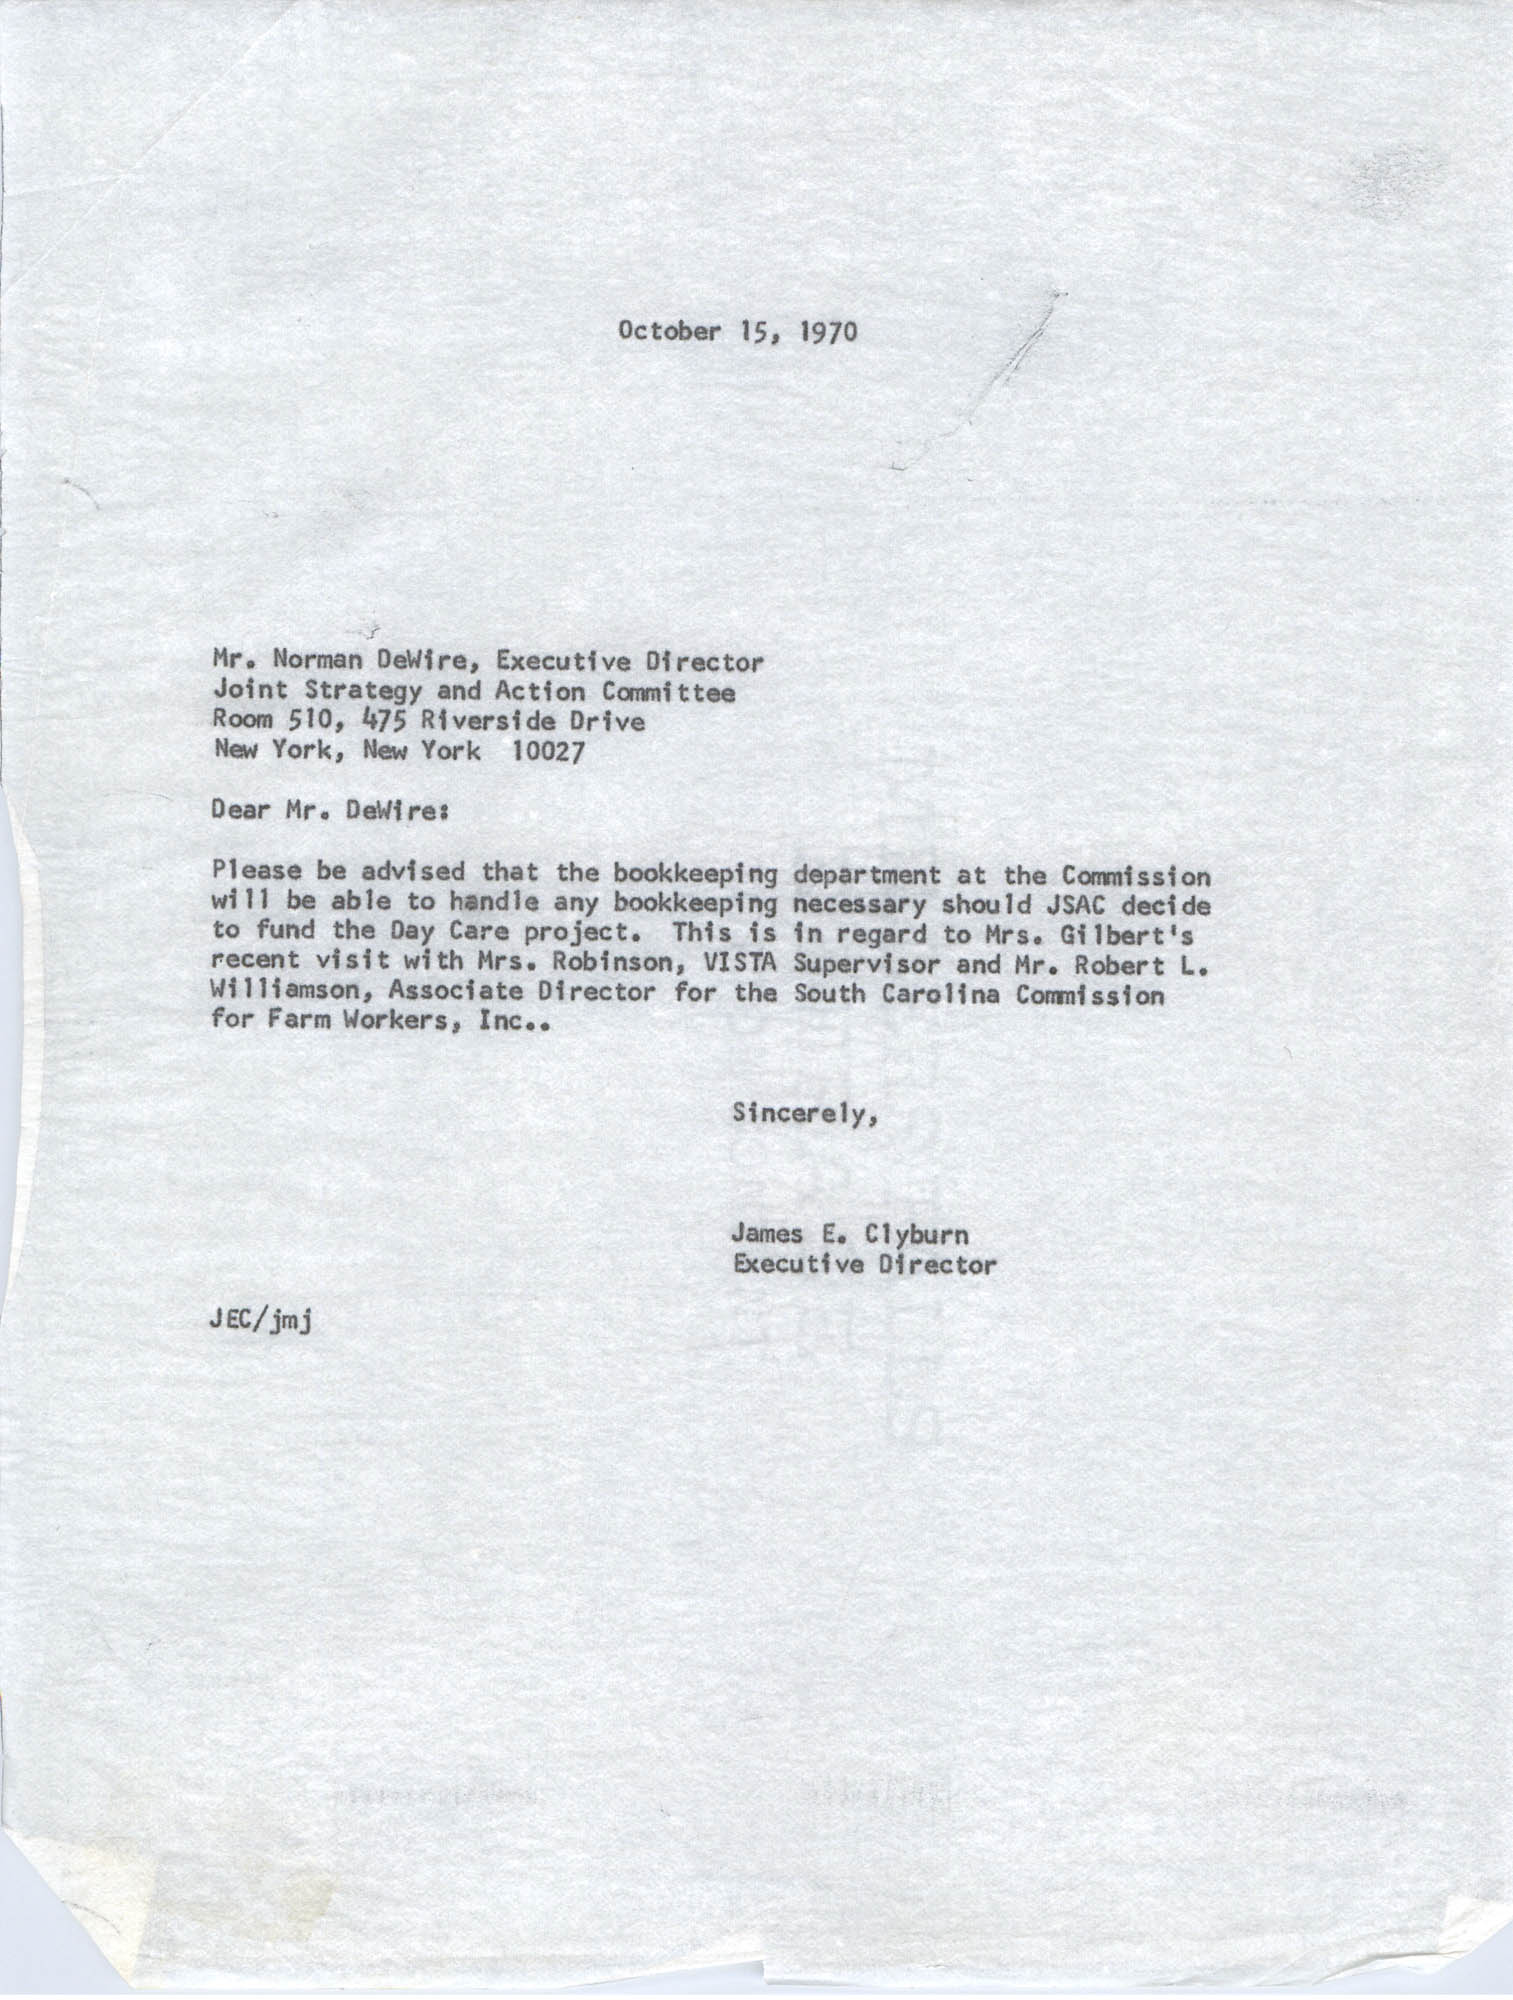 Letter from James E. Clyburn to Norman DeWire, October 15, 1970